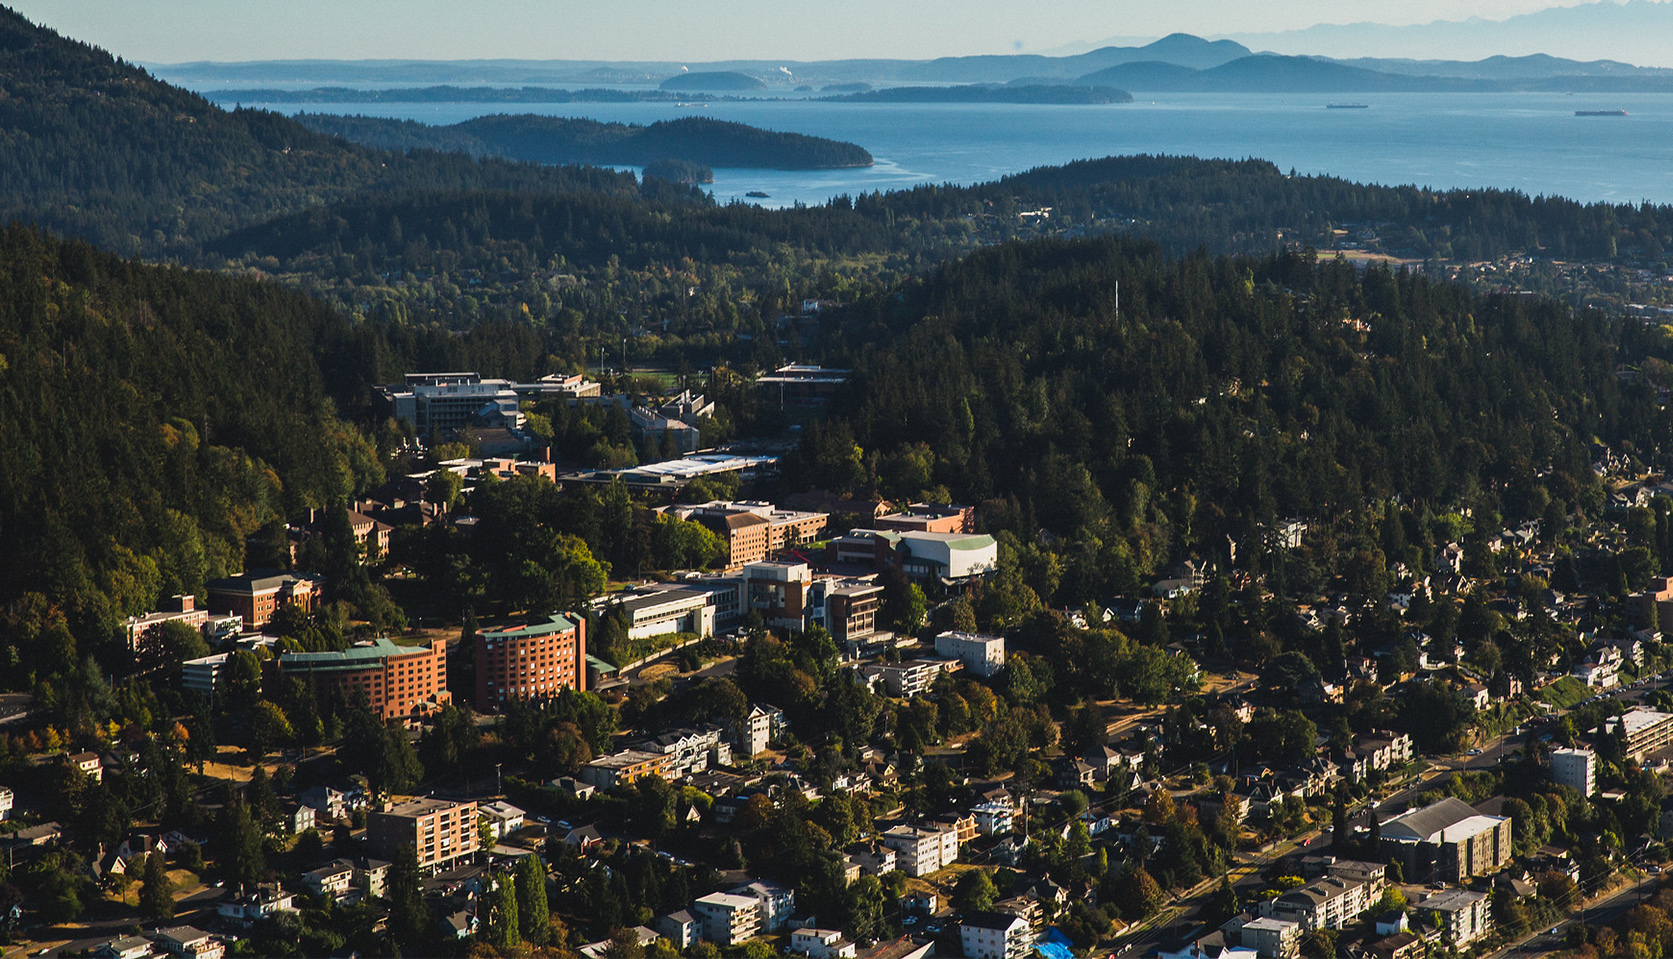 The WWU campus as seen from above, with Bellingham Bay in the background